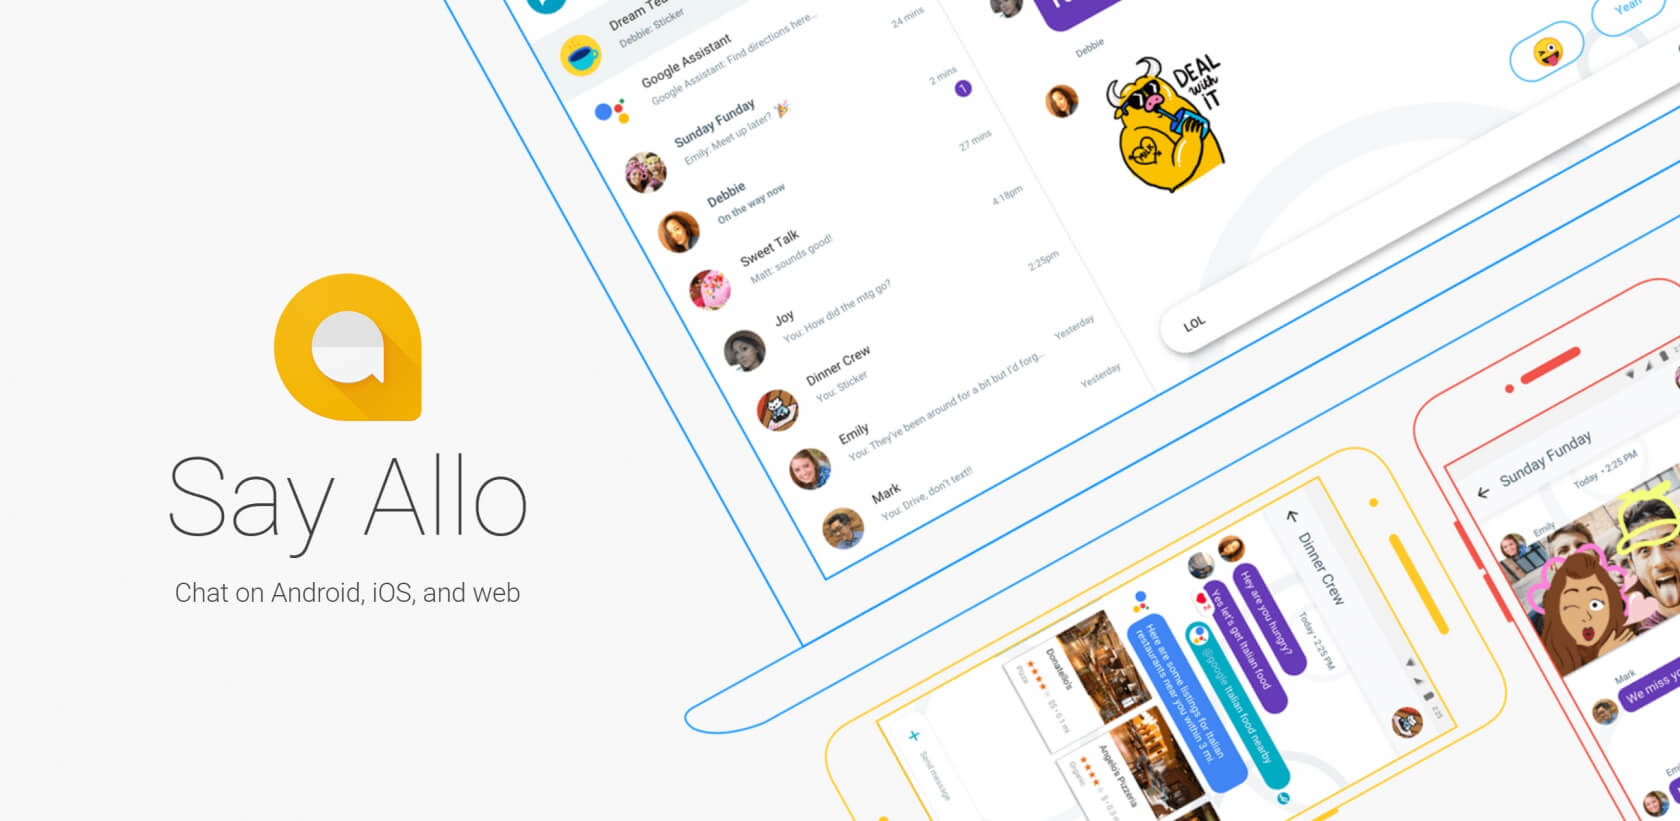 Google Allo is now available to desktop users, as long as they have an Android phone